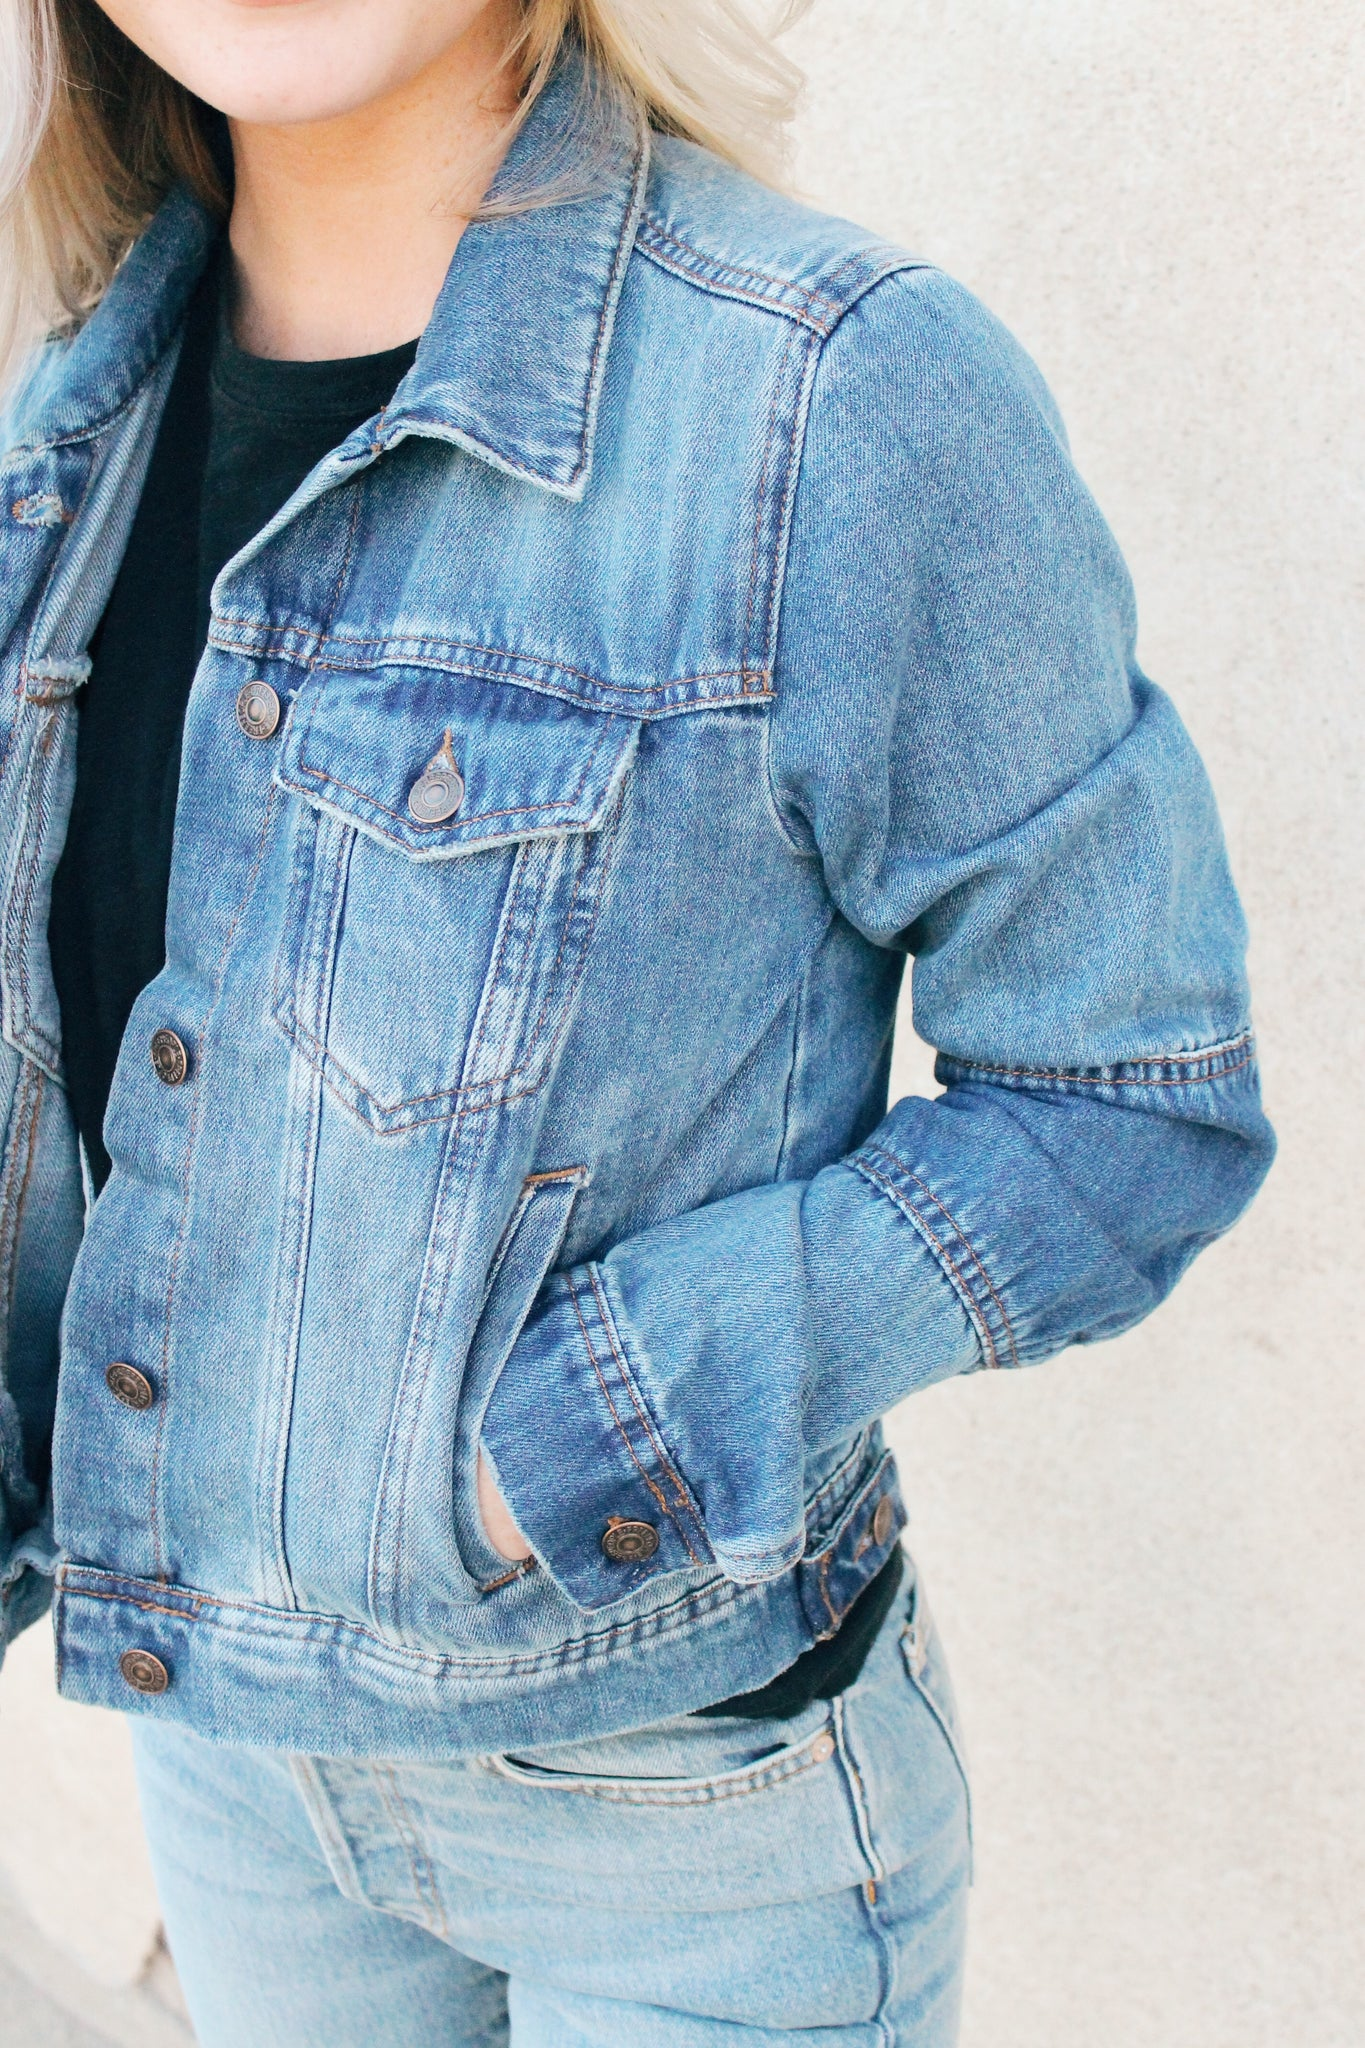 Rumors Denim Jacket Navy